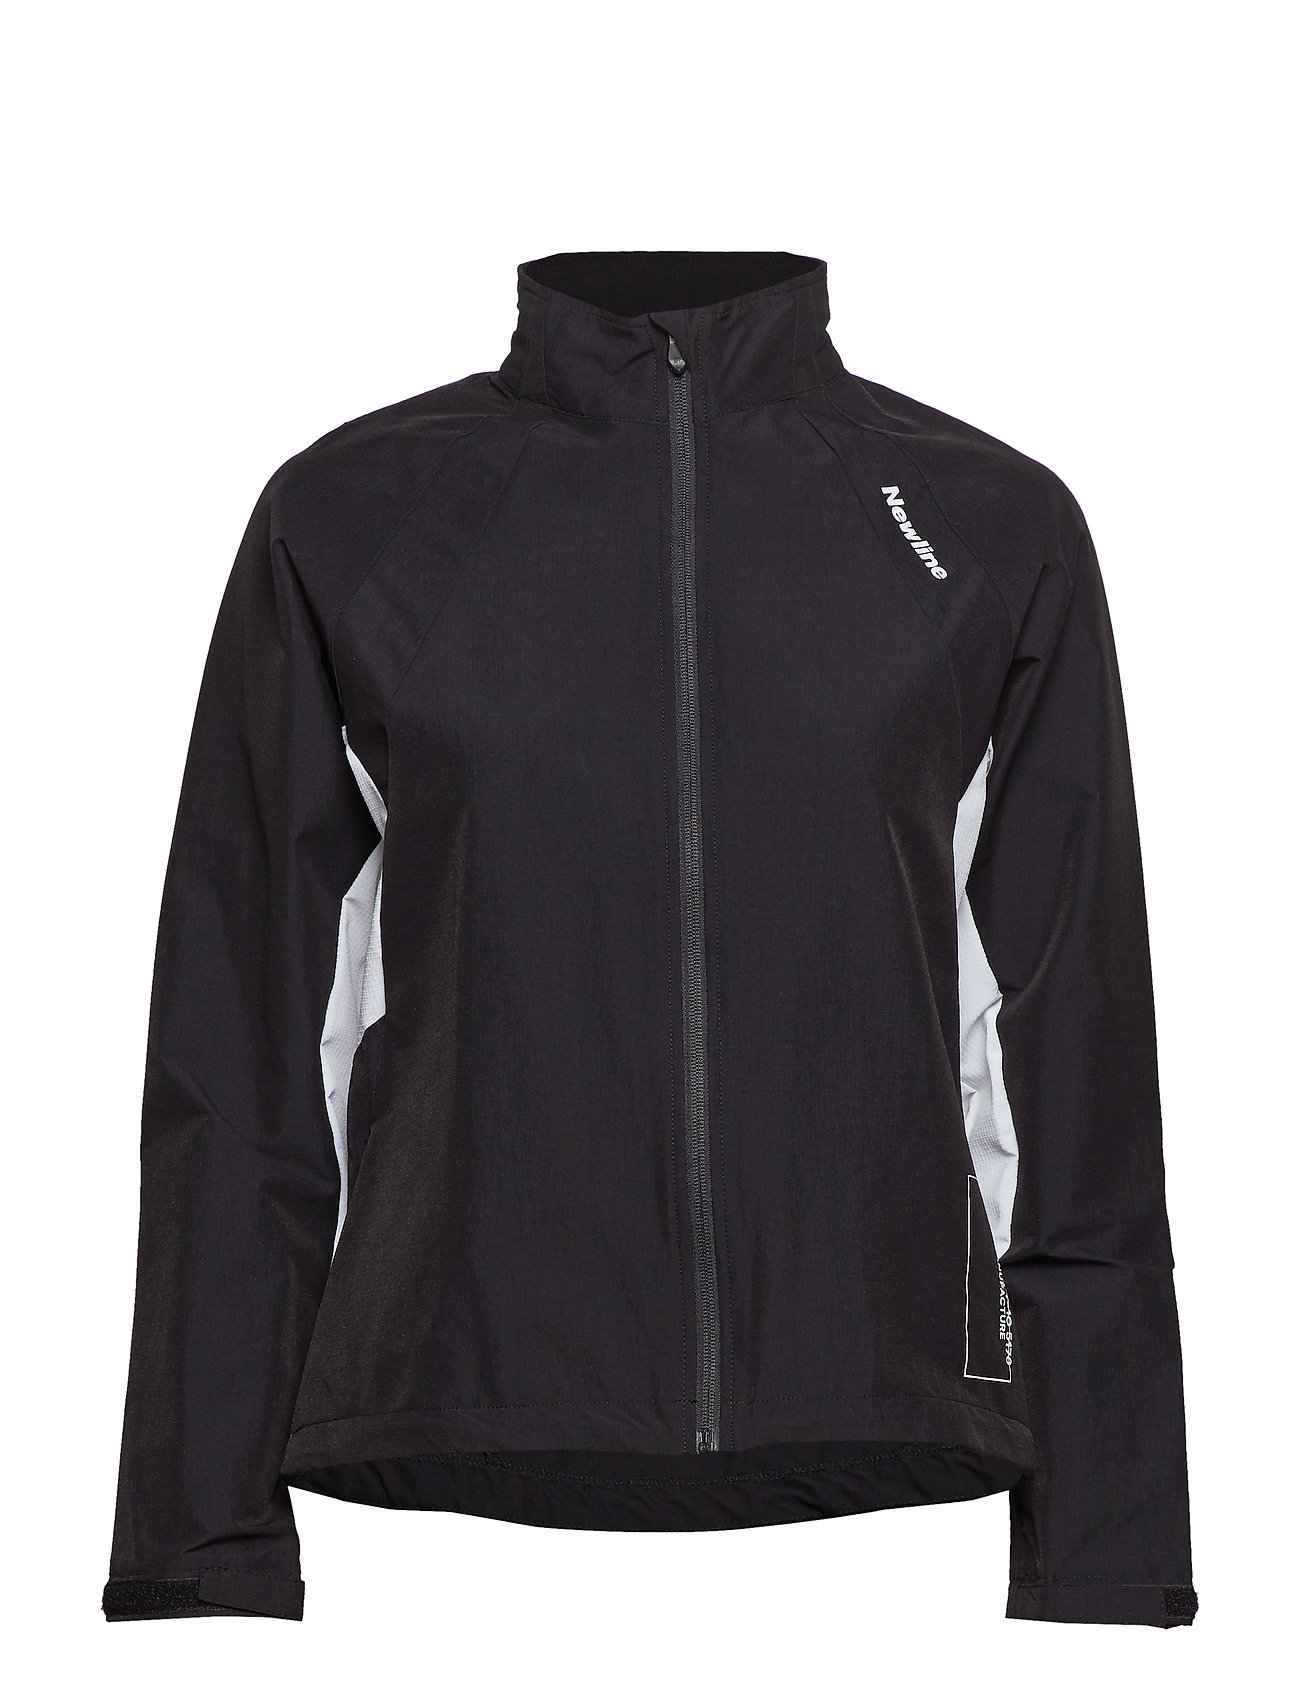 Newline Black Training Utility Jacket